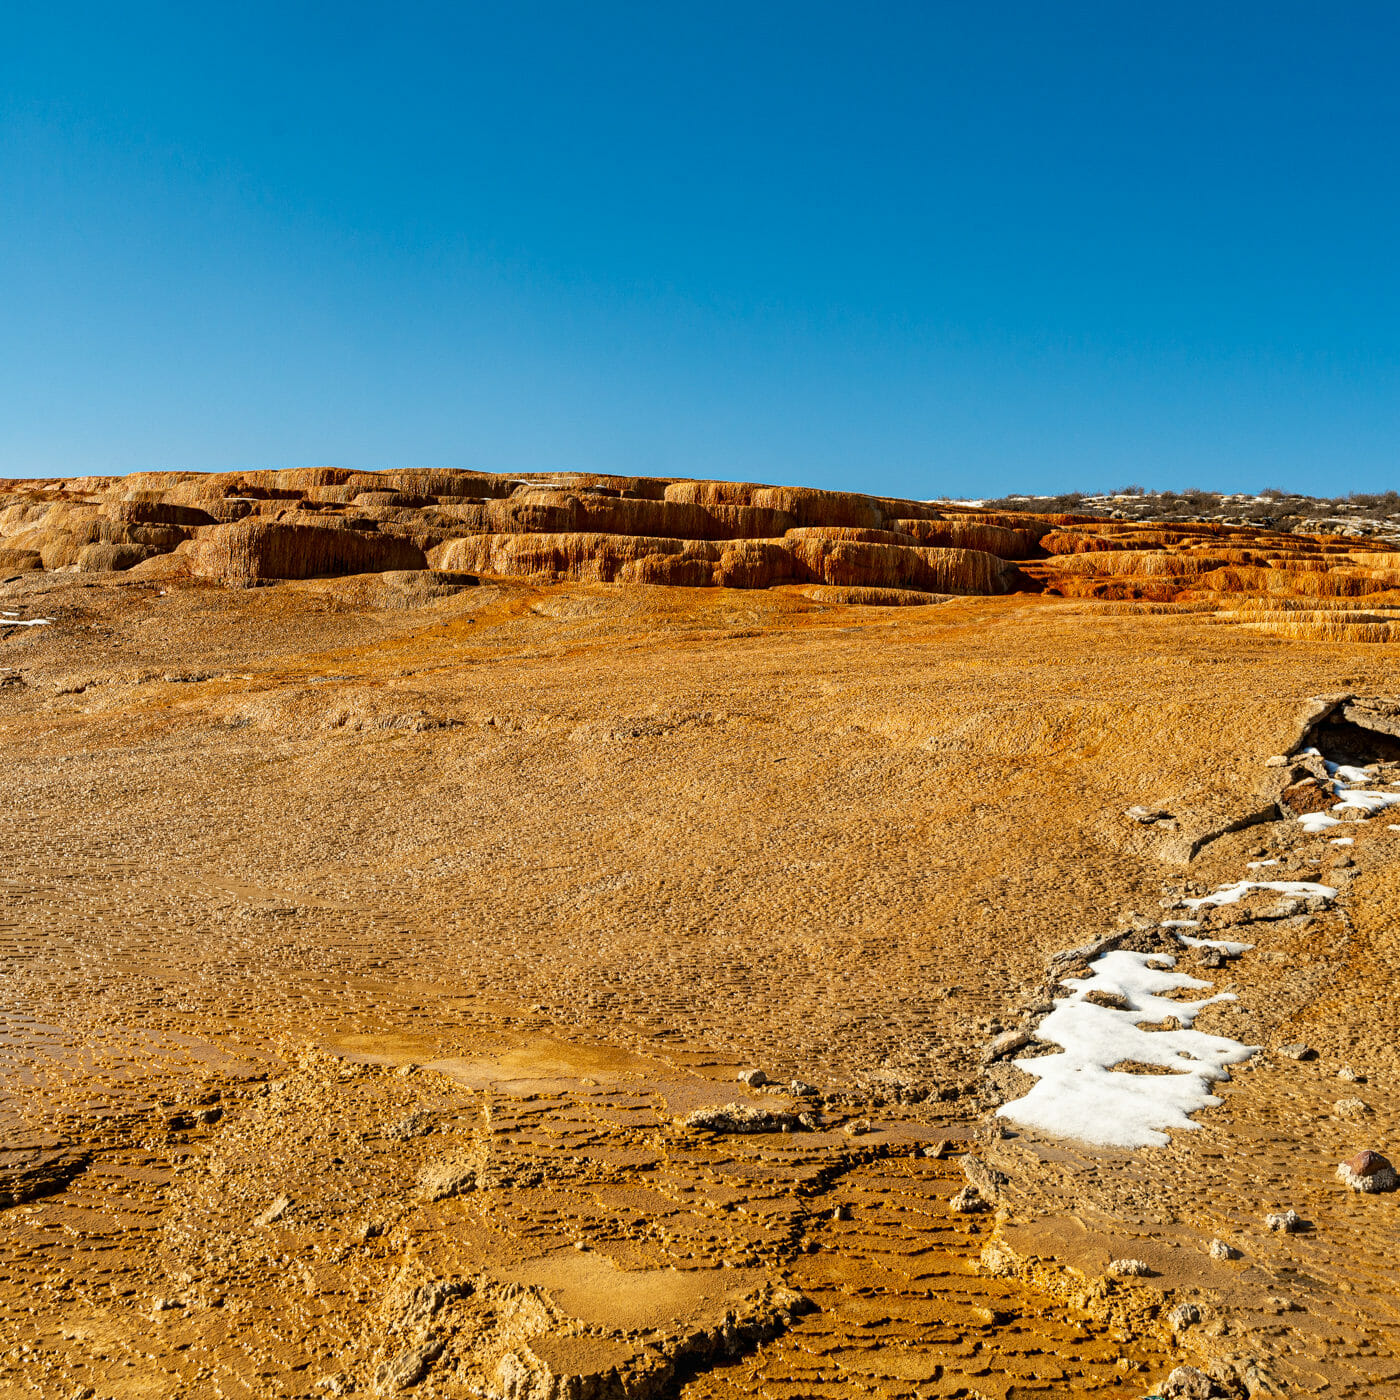 LIMESTONE LAND | 石灰岩の棚田、A rocks made up mainly of calcium carbonate called limestone spread out like shelves.